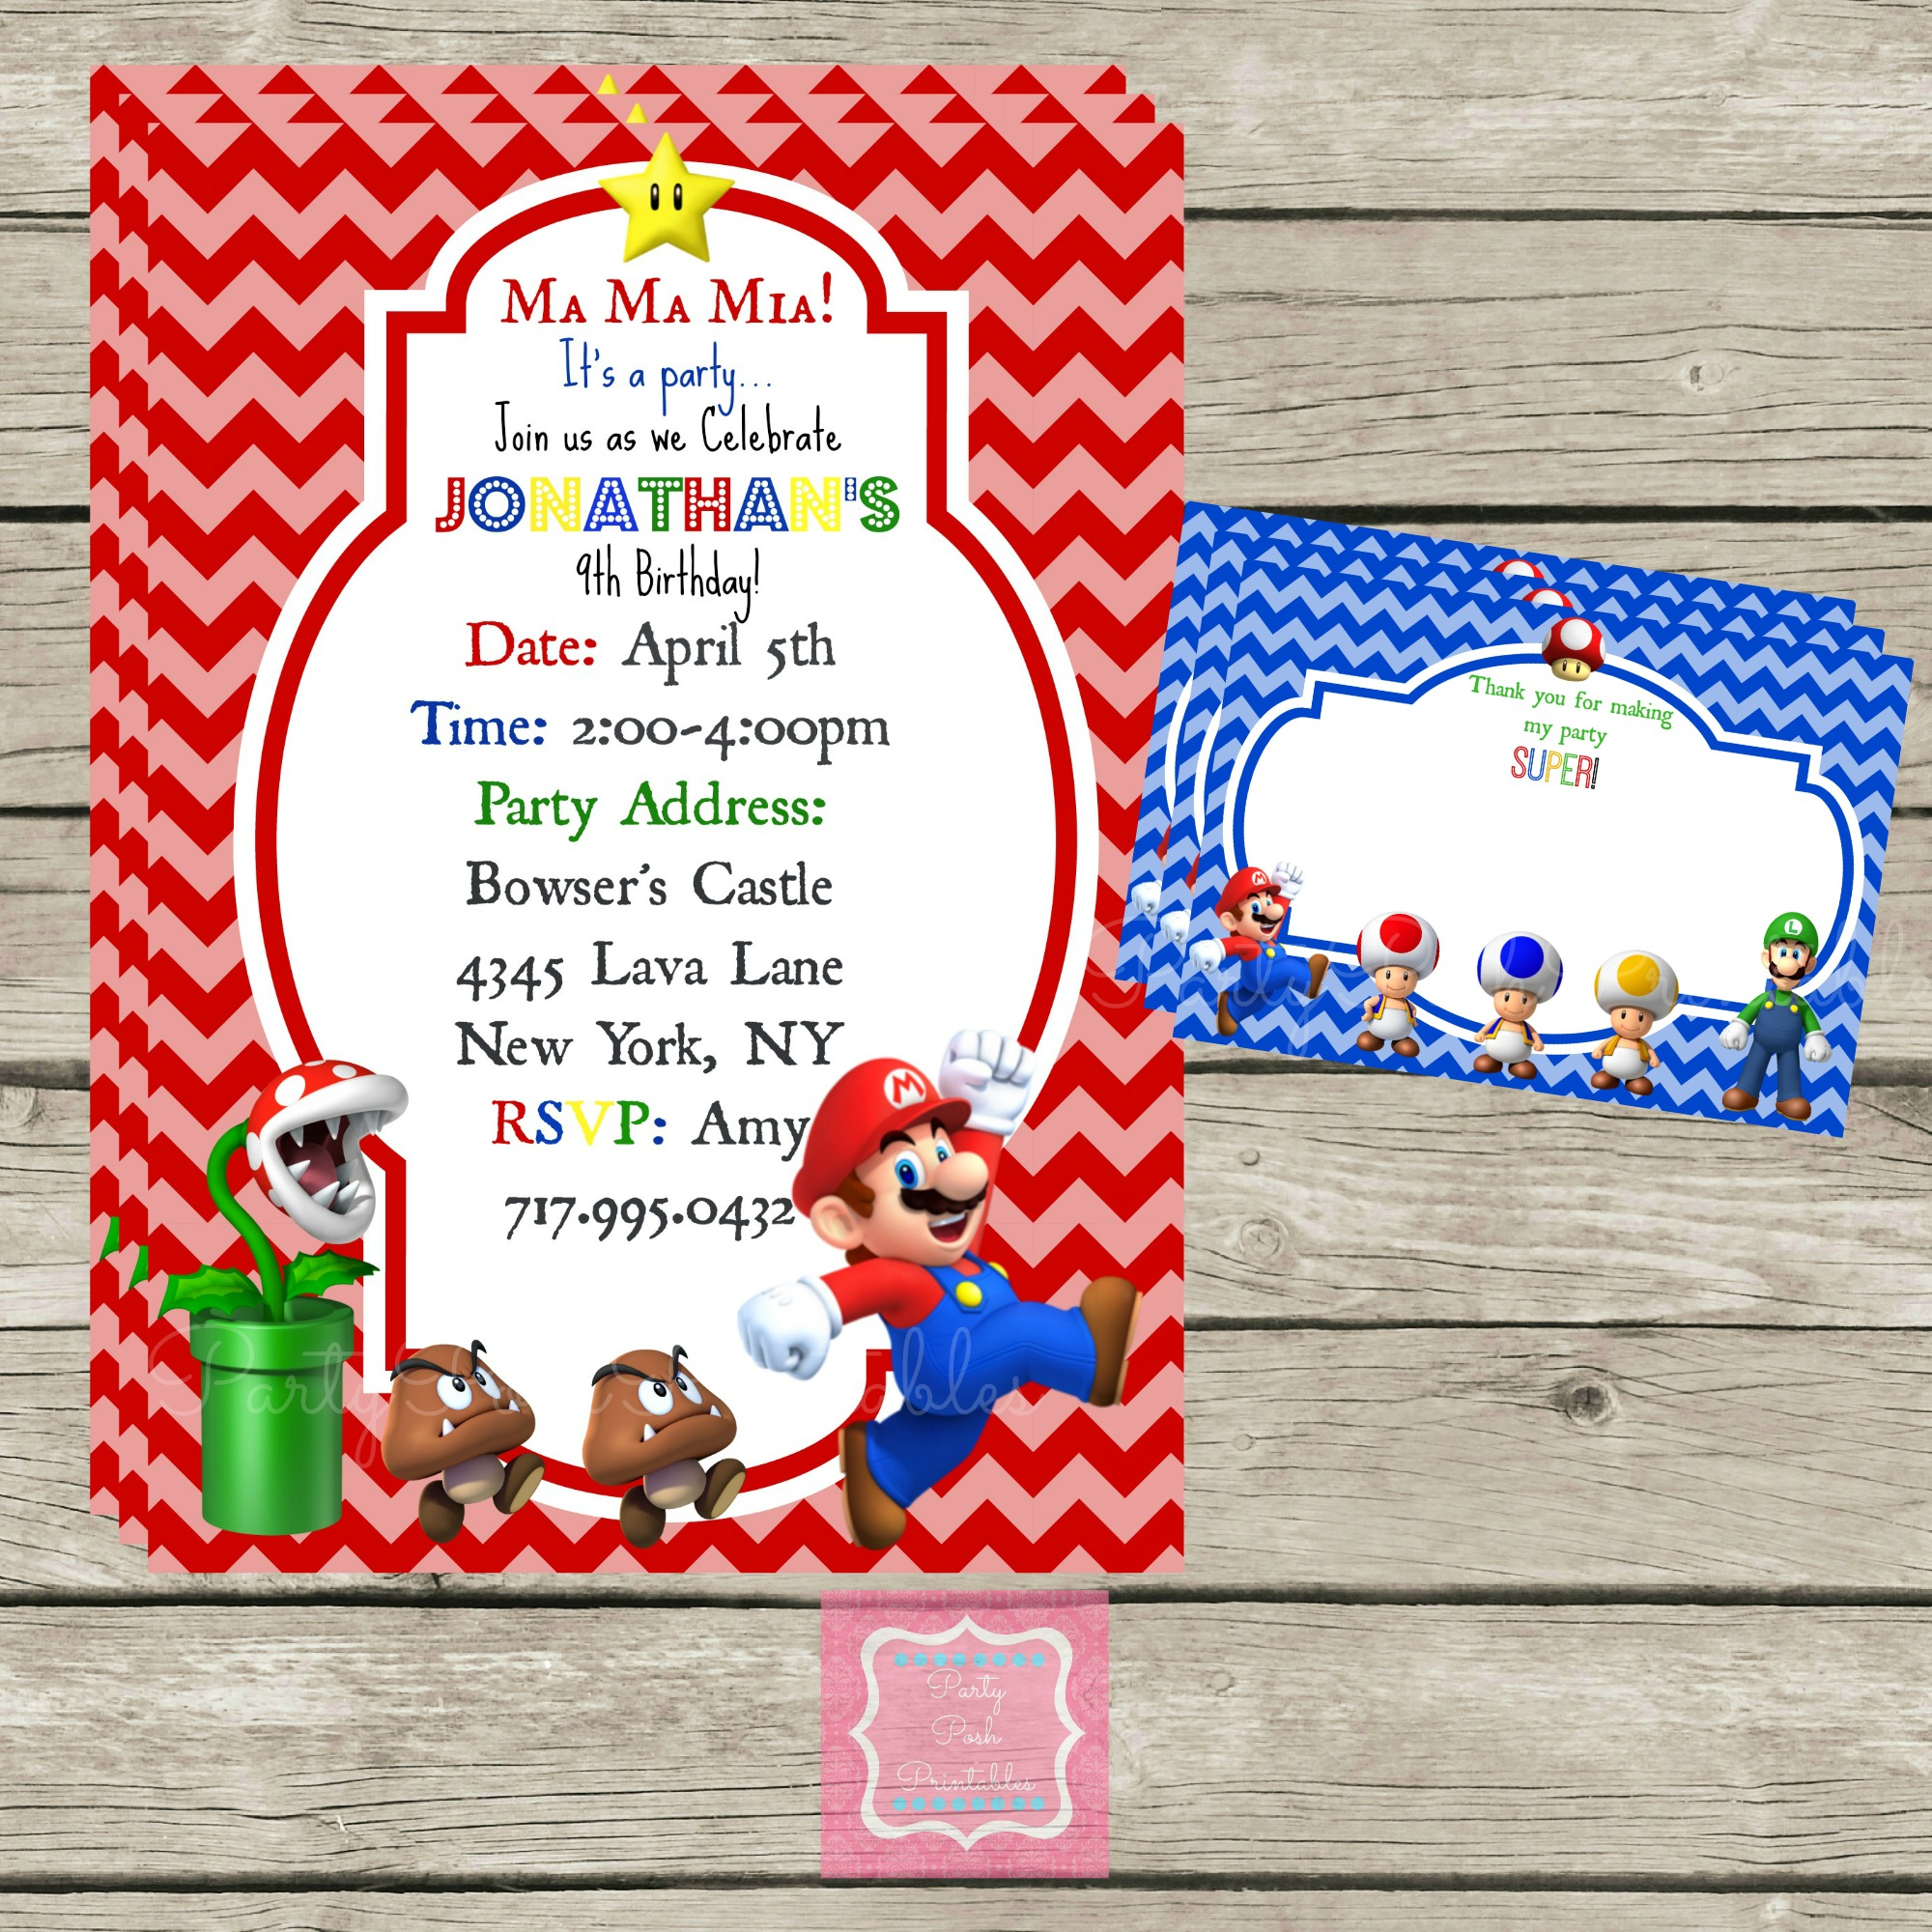 Super Mario Bros Birthday Parties Cake and Cupcake Ideas – Super Mario Bros Party Invitations